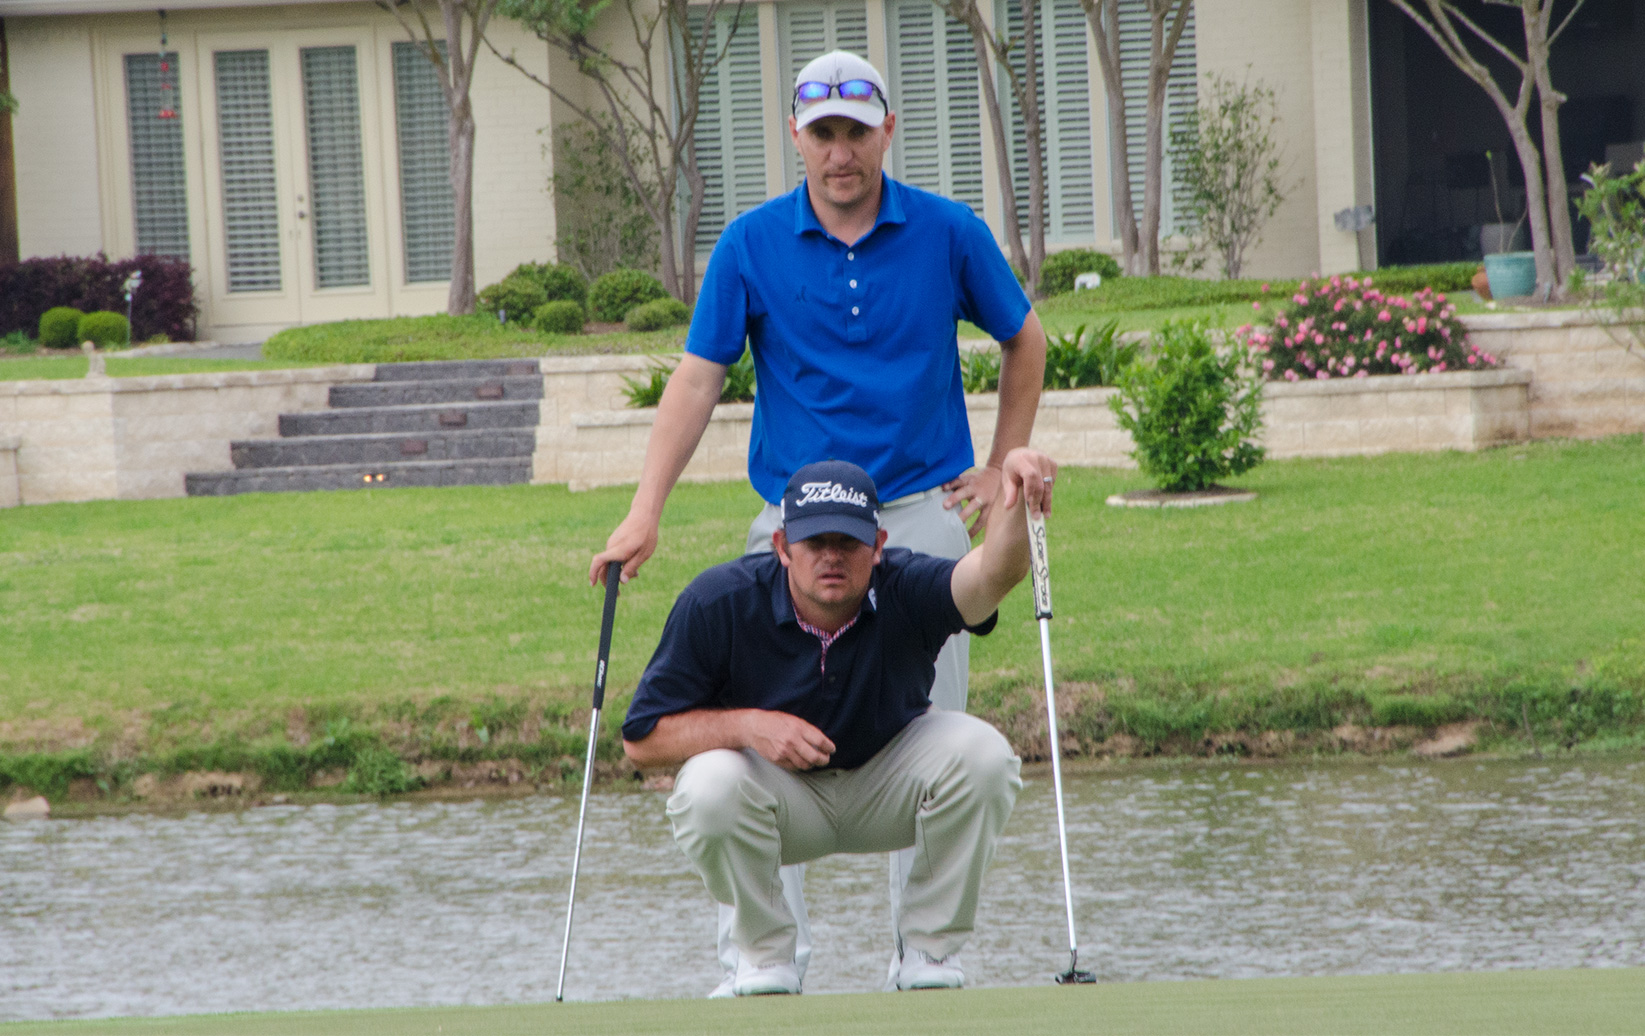 Team of Martin/O'Brien Lead After Round One of the EPEC Pro-Pro Championship